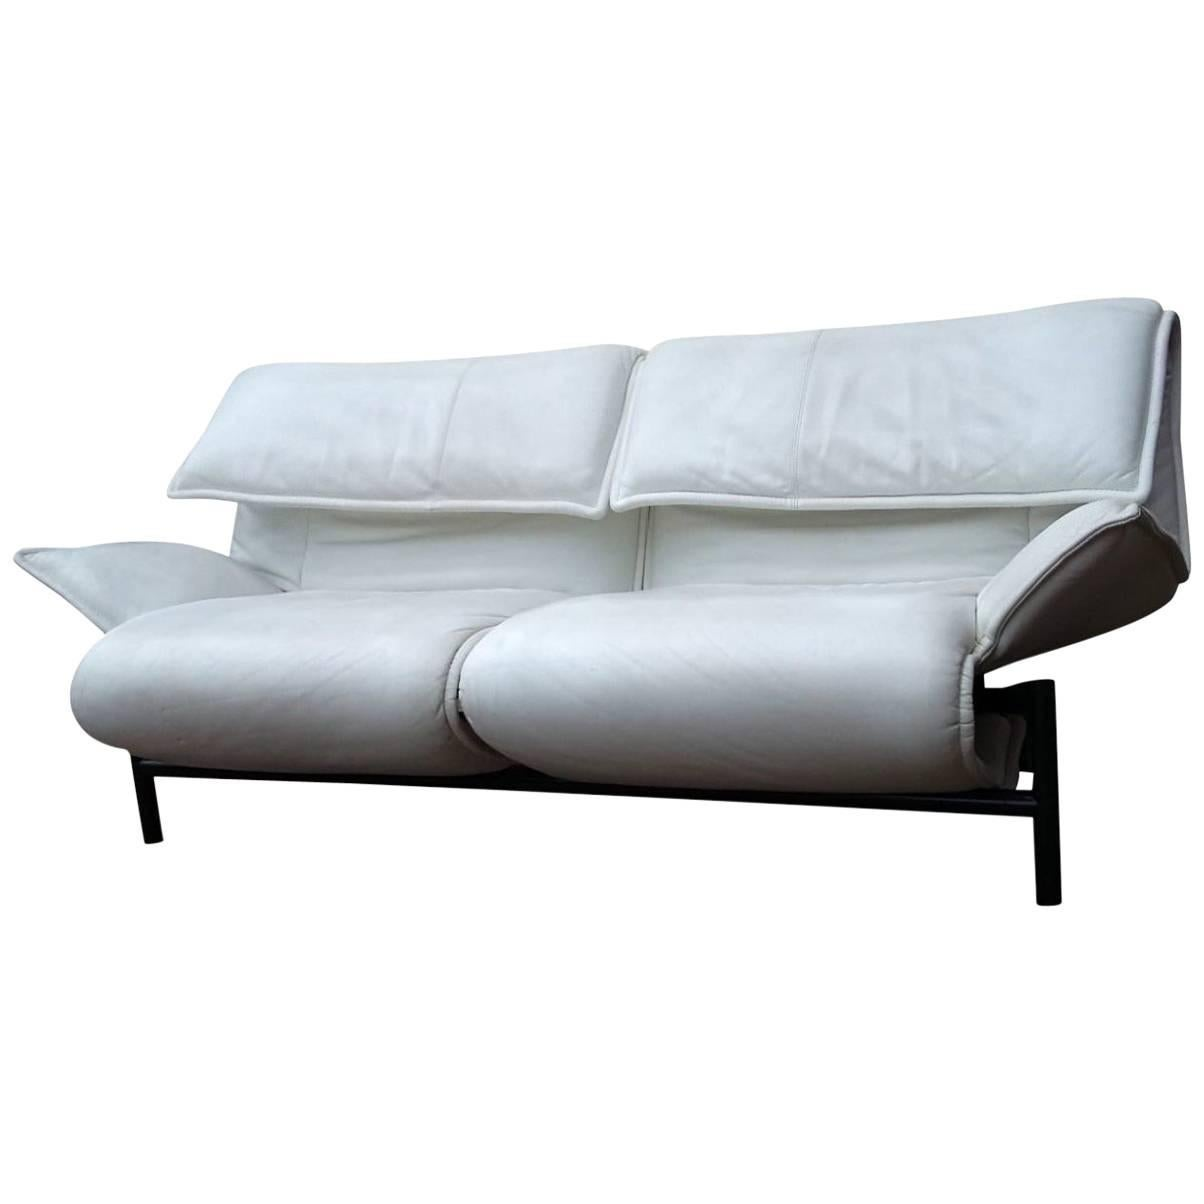 White Leather Couch White Leather Sofa By Vico Magistretti For Cassina Model Veranda 1980s